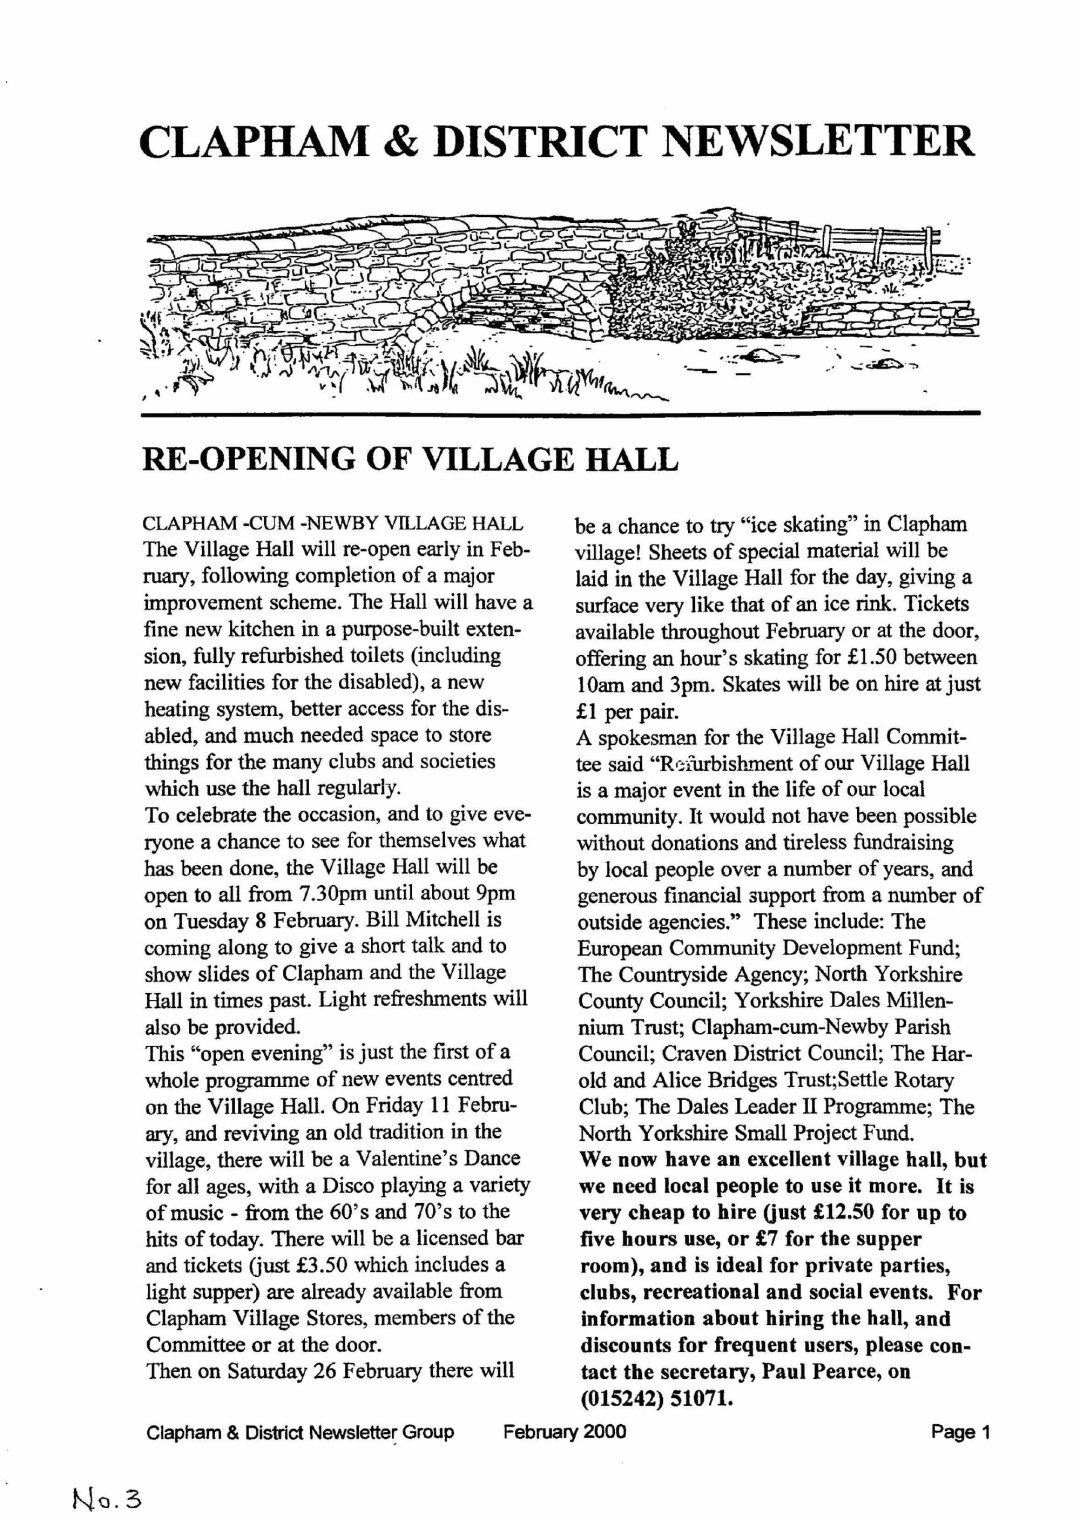 Clapham_Newsletter_No3_February_2000-1